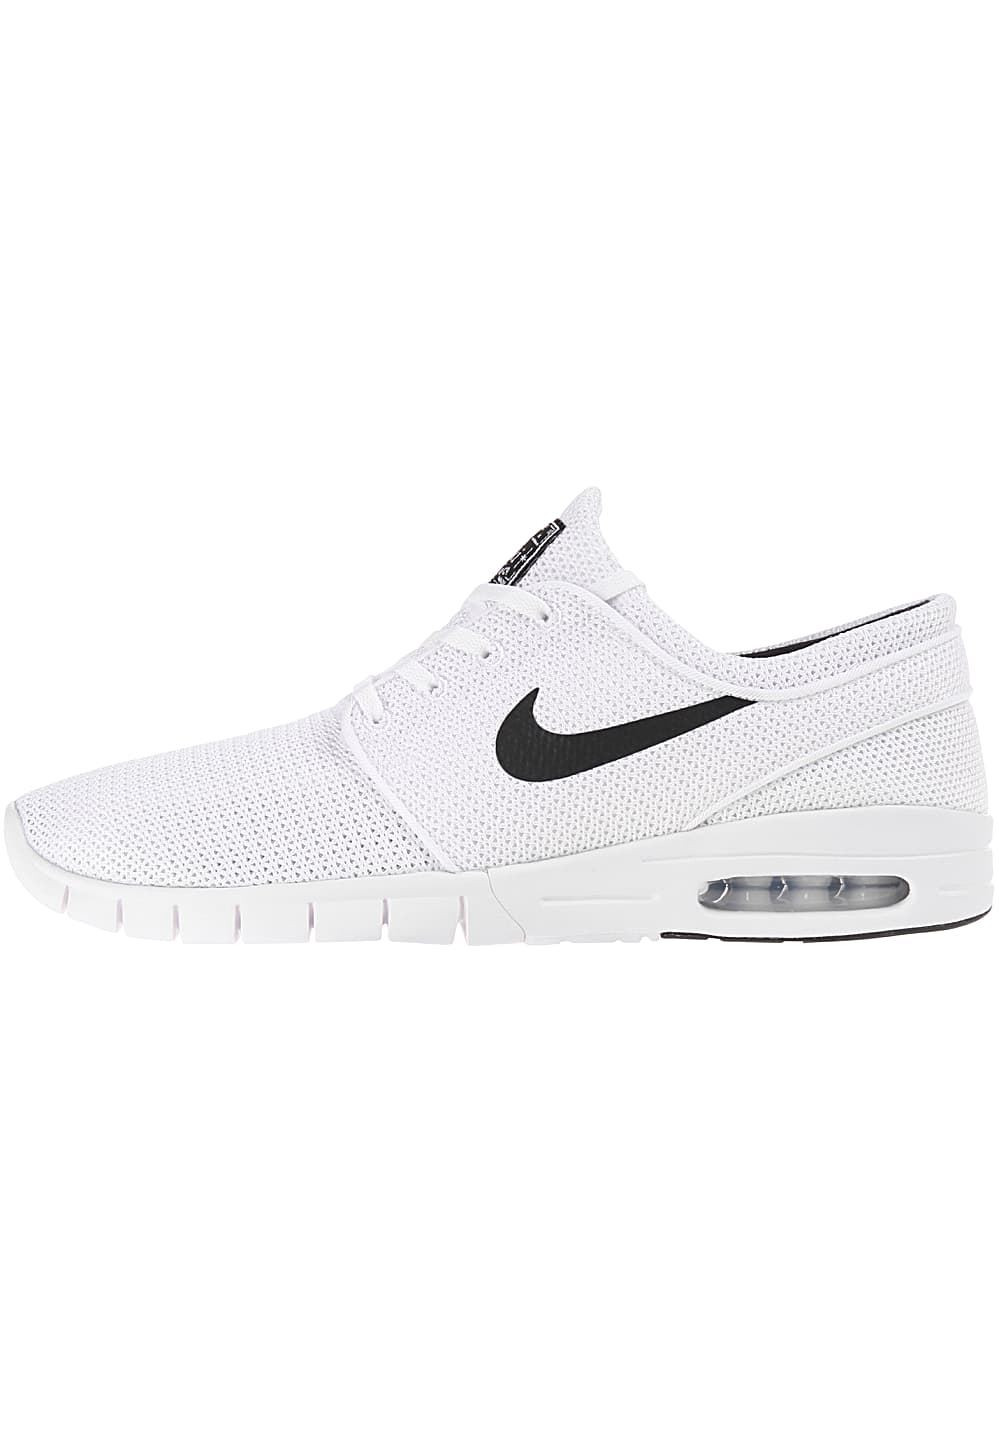 special sales wholesale price multiple colors NIKE SB Stefan Janoski Max - Sneakers - White